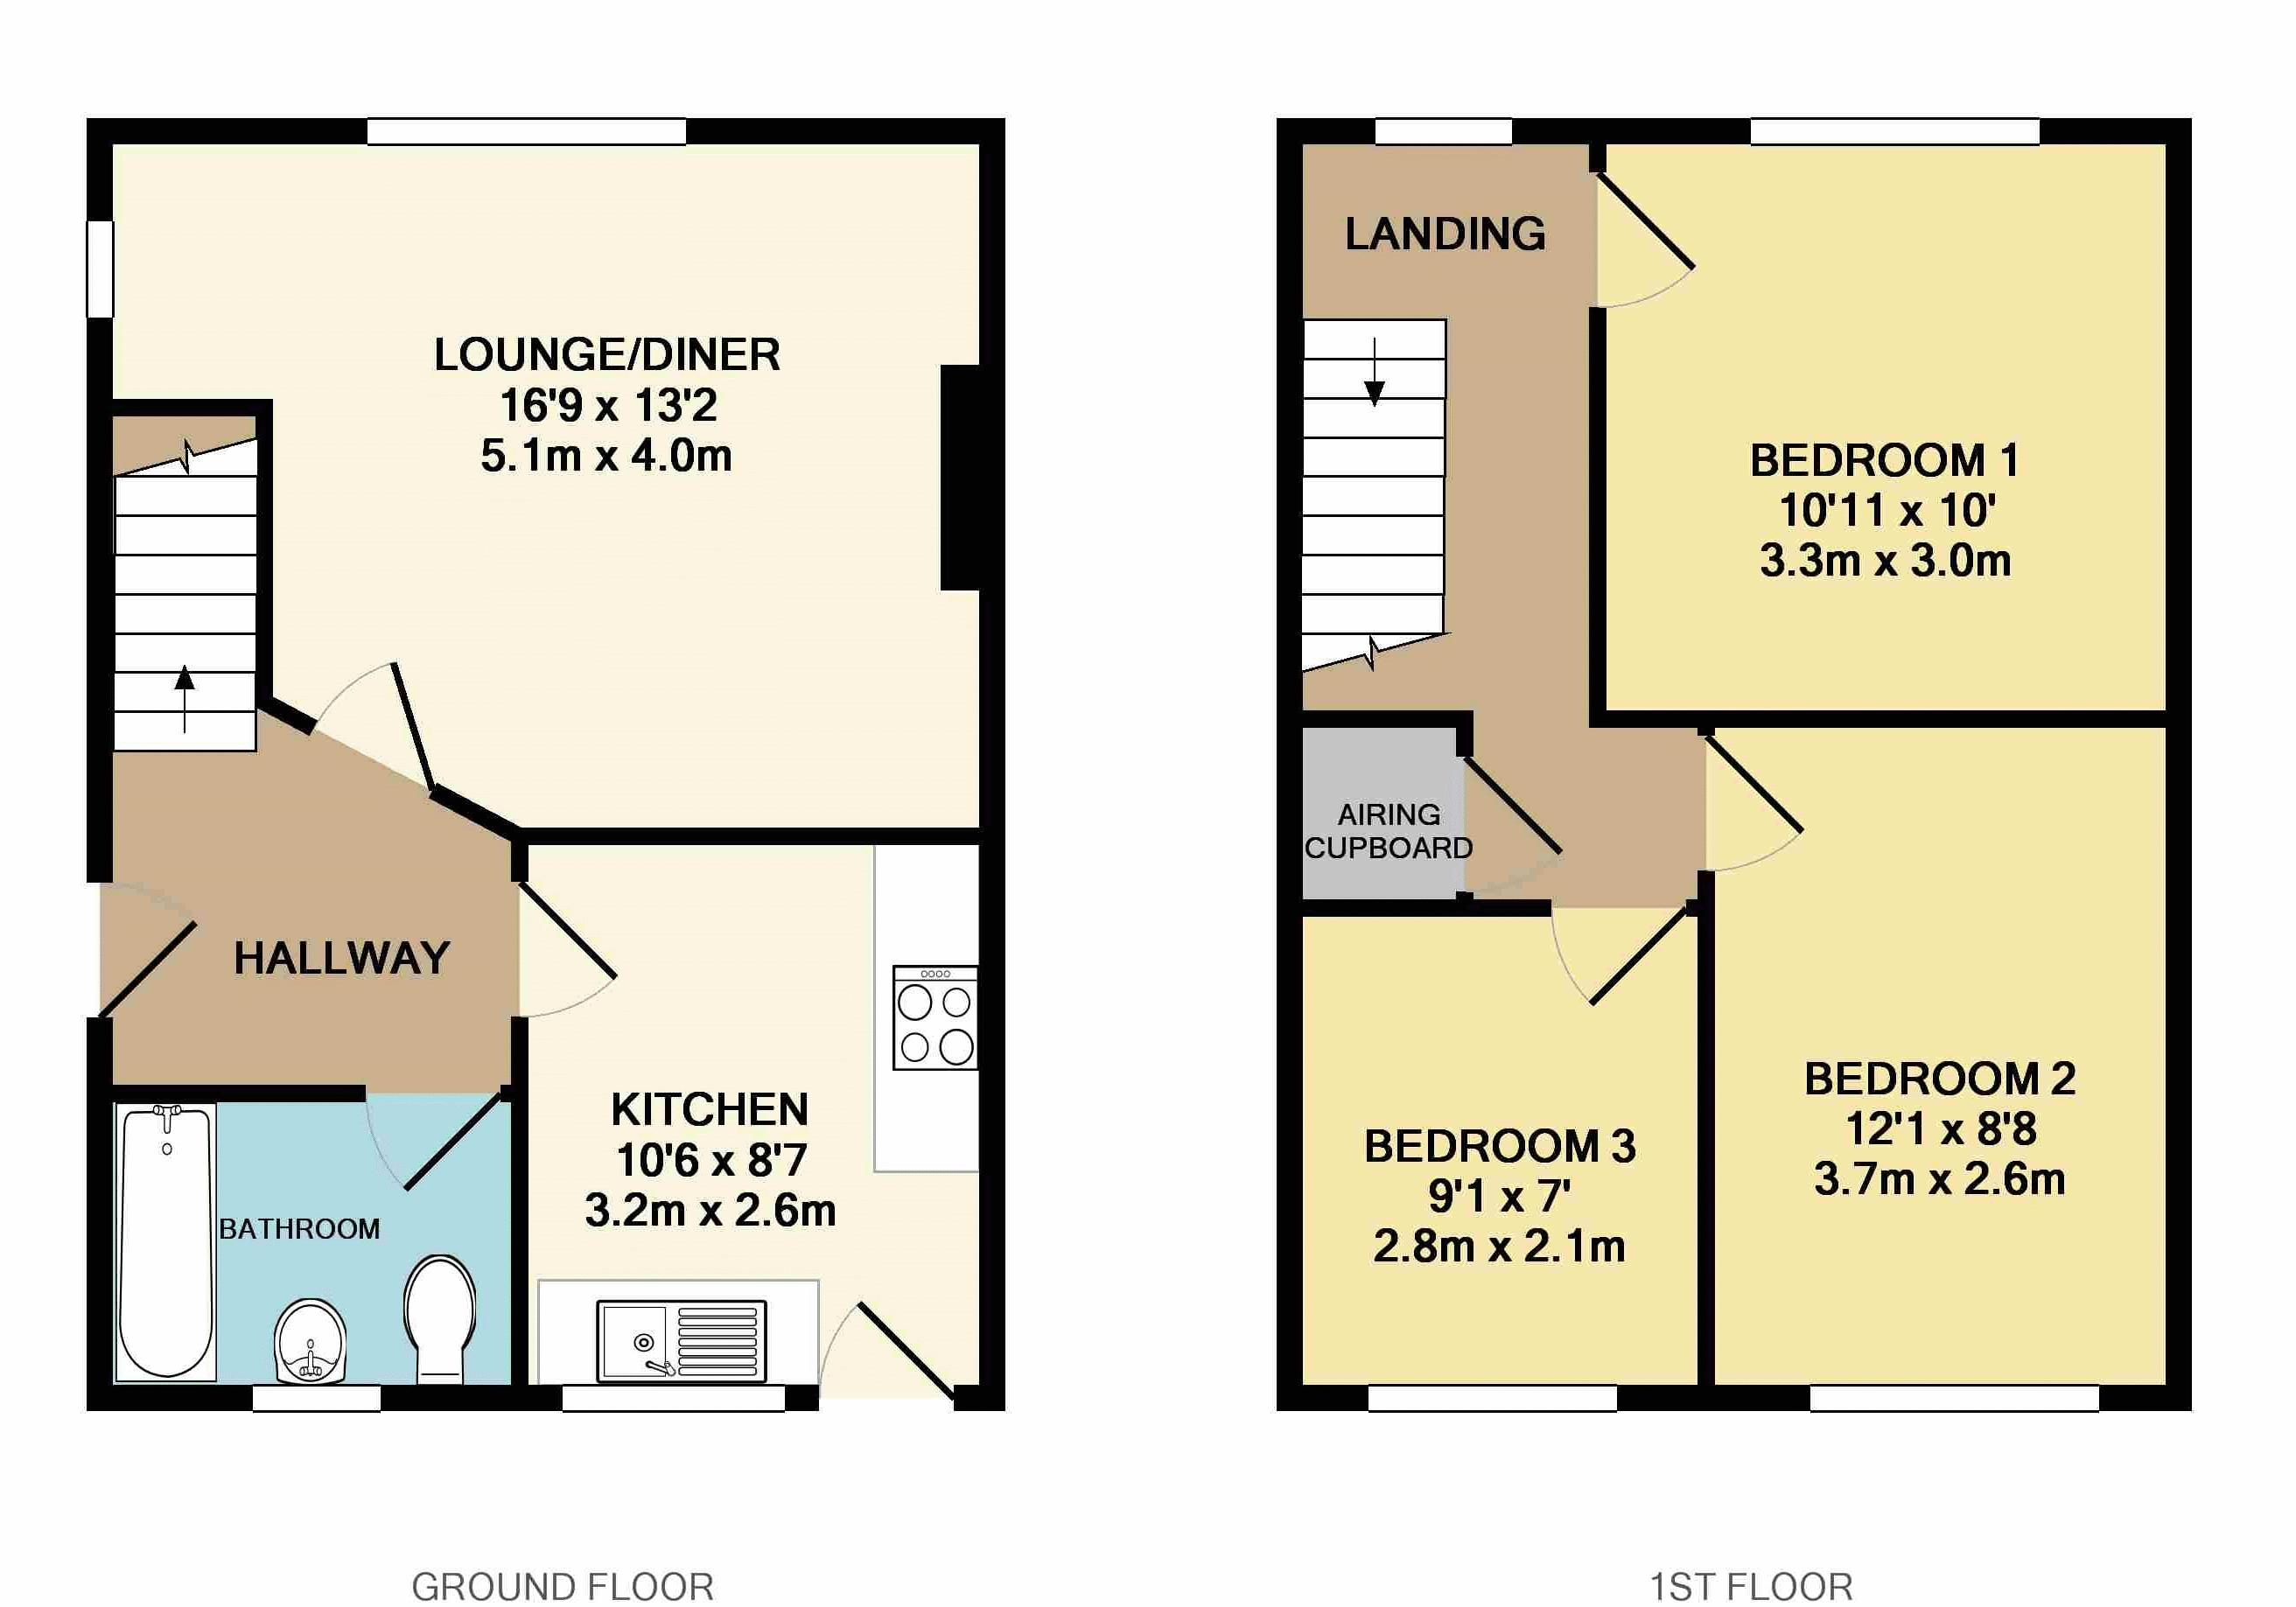 3 bedroom house for sale in barton le clay for How much is a bathroom worth on an appraisal